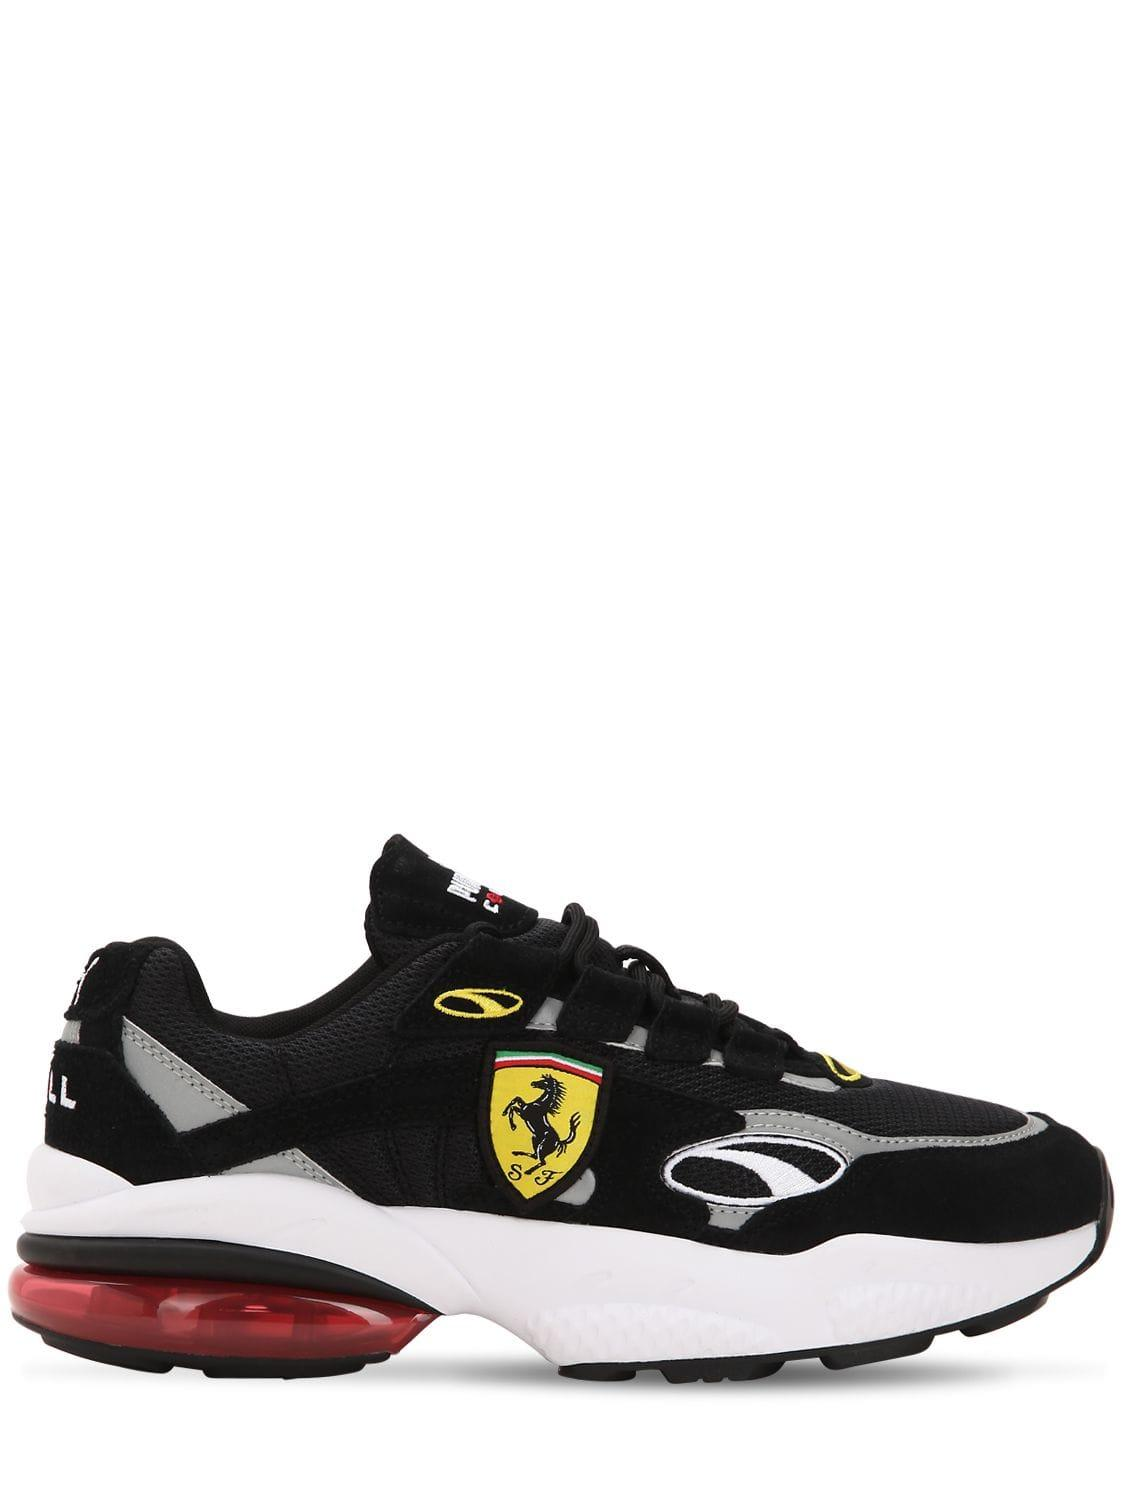 99207917e5a3dc Lyst - Puma Select Sf Cell Venom Mesh   Suede Sneakers in Black for Men